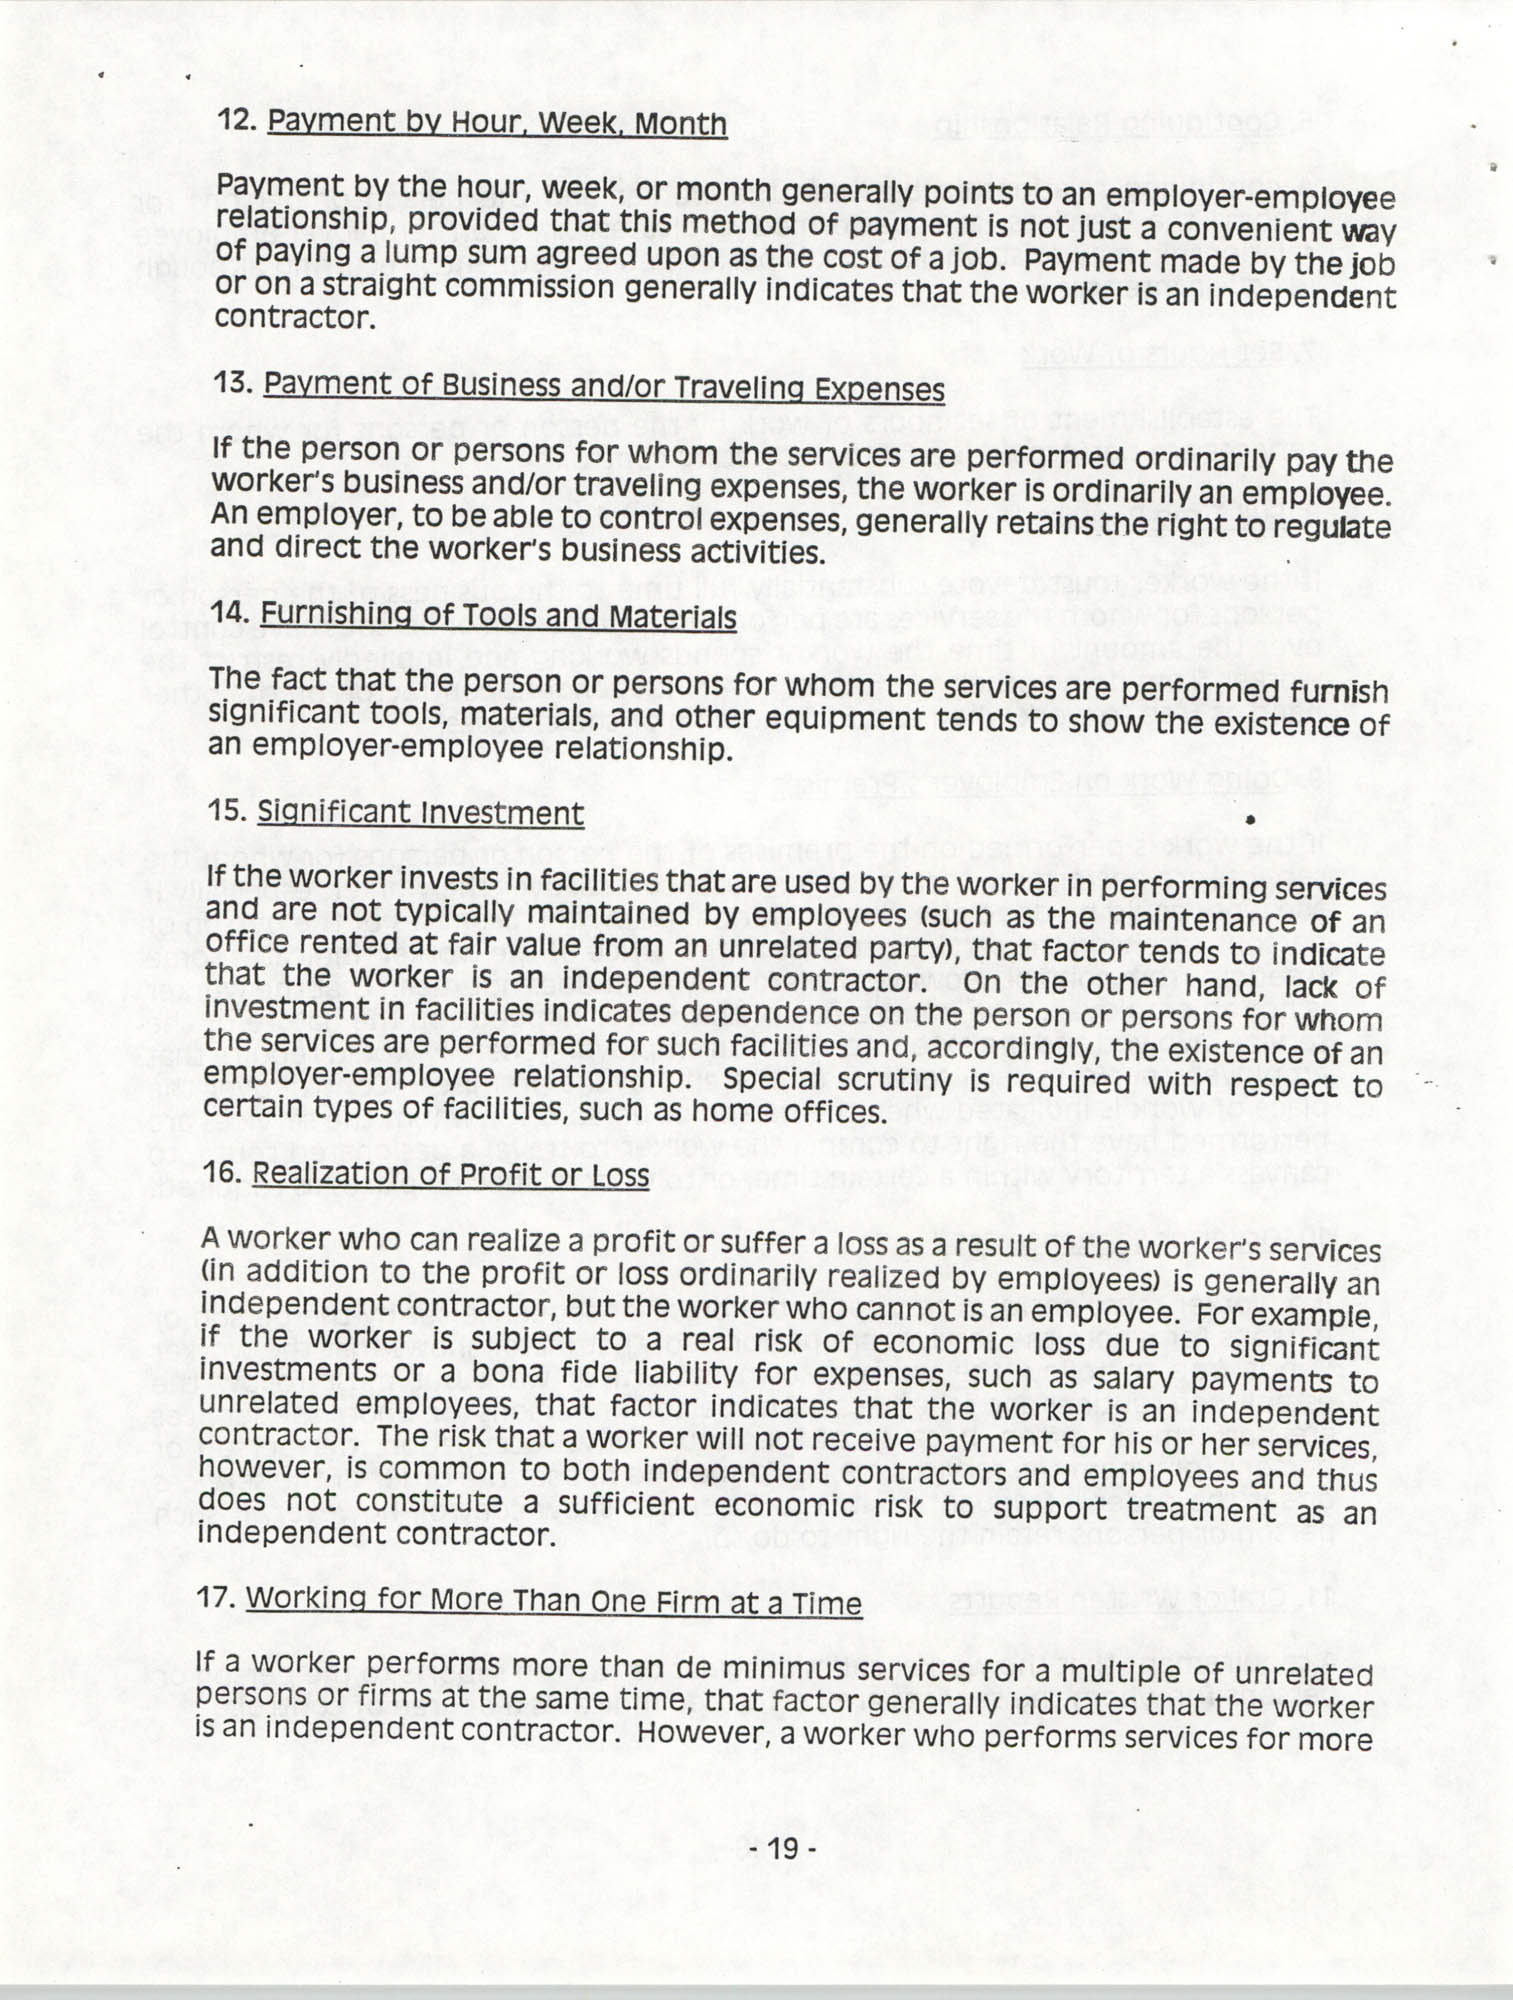 Tax Responsibilities of NAACP Branches as 501(c) (4) Entities, Page 19